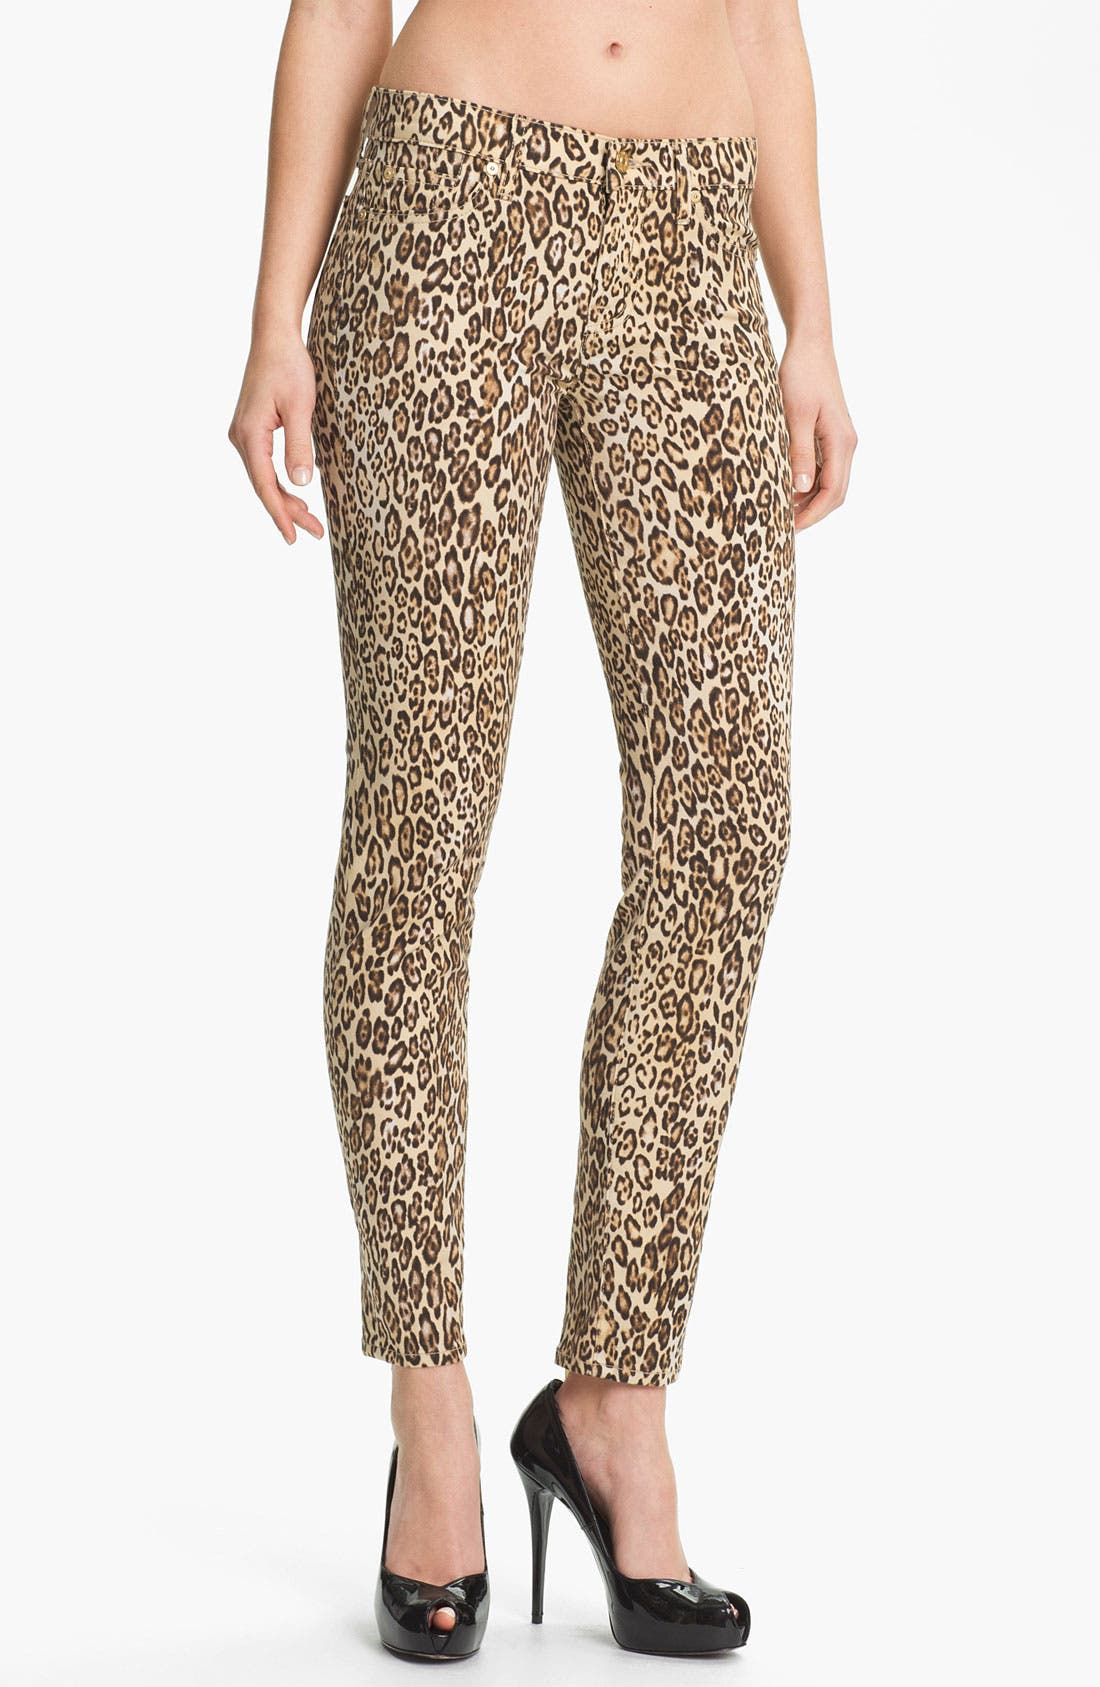 Alternate Image 1 Selected - 7 For All Mankind® 'The Slim Cigarette' Stretch Jeans (Cheetah Print)